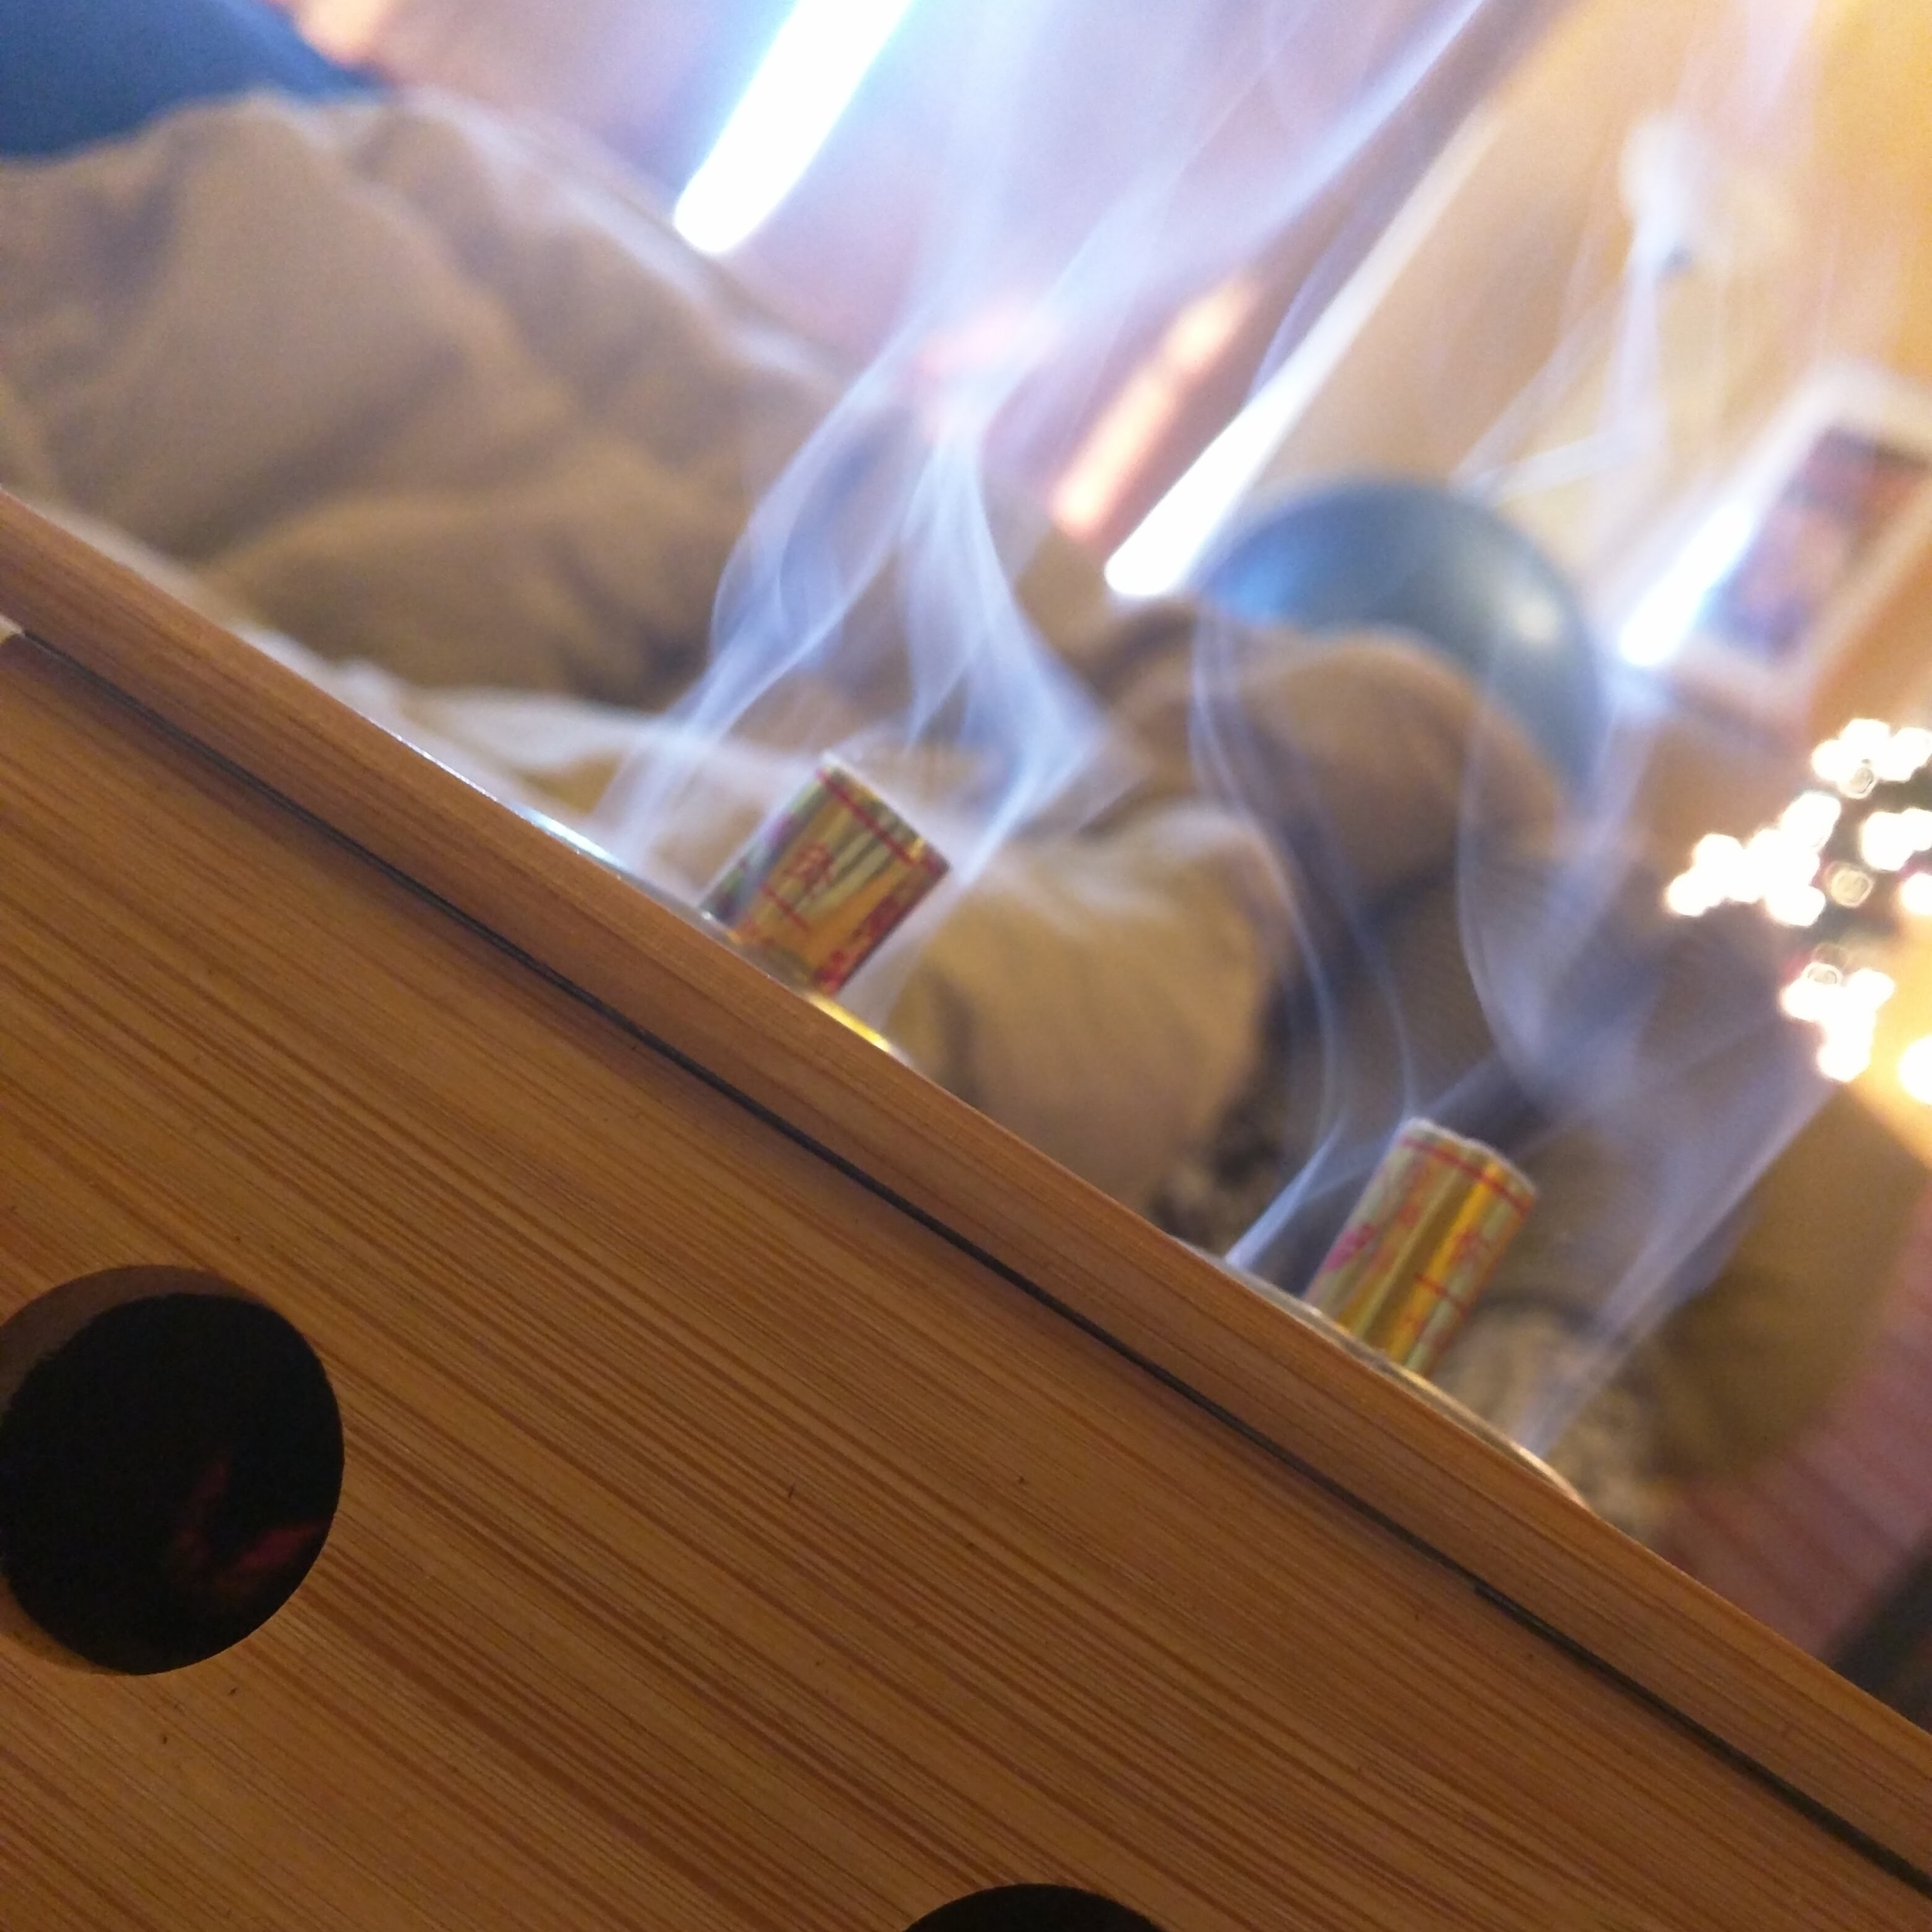 I use a special moxa box to hold sticks of burning herb over painful areas